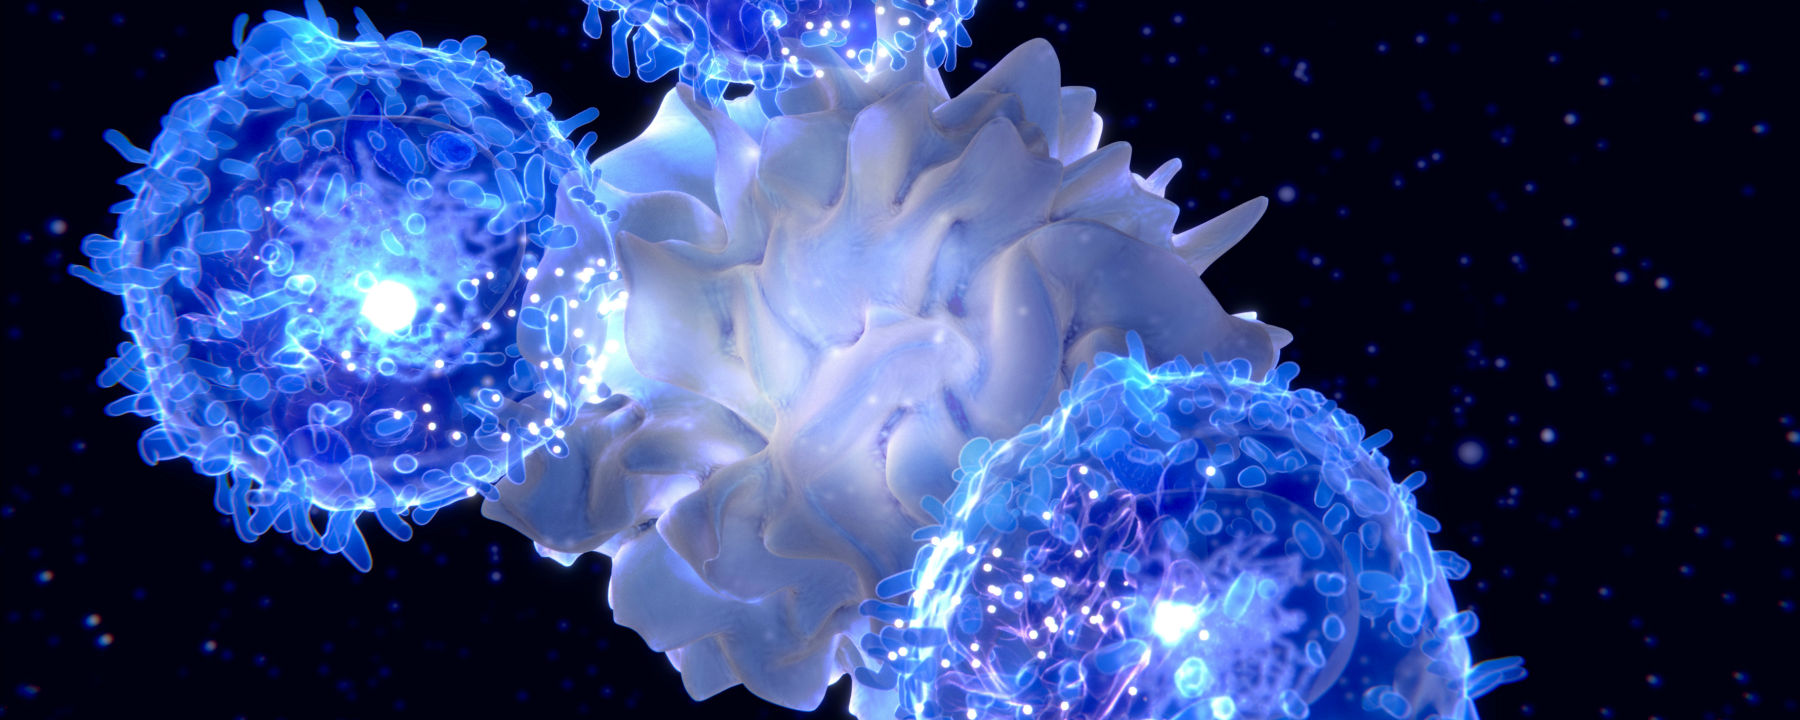 In Situ Vaccination: A Cancer Treatment a Century in the Making